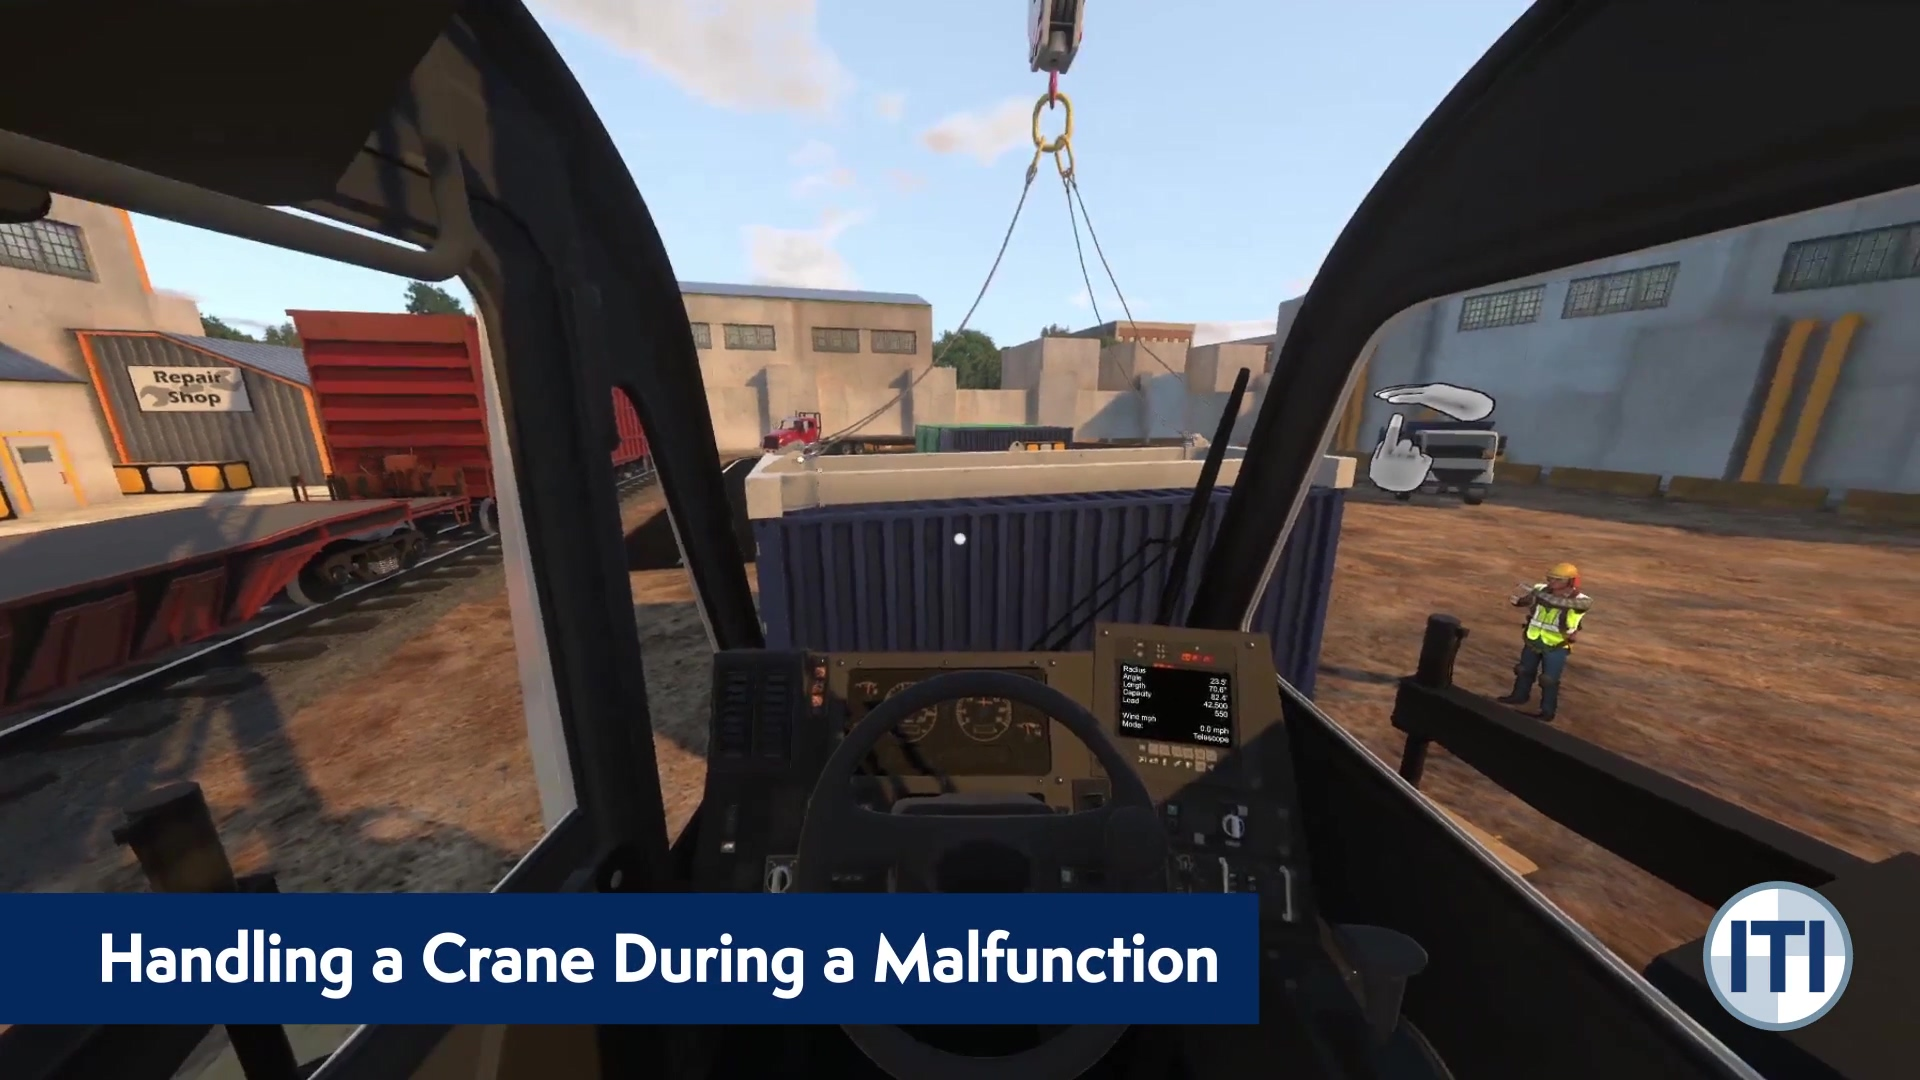 7- Handling a Crane During a Malfunction